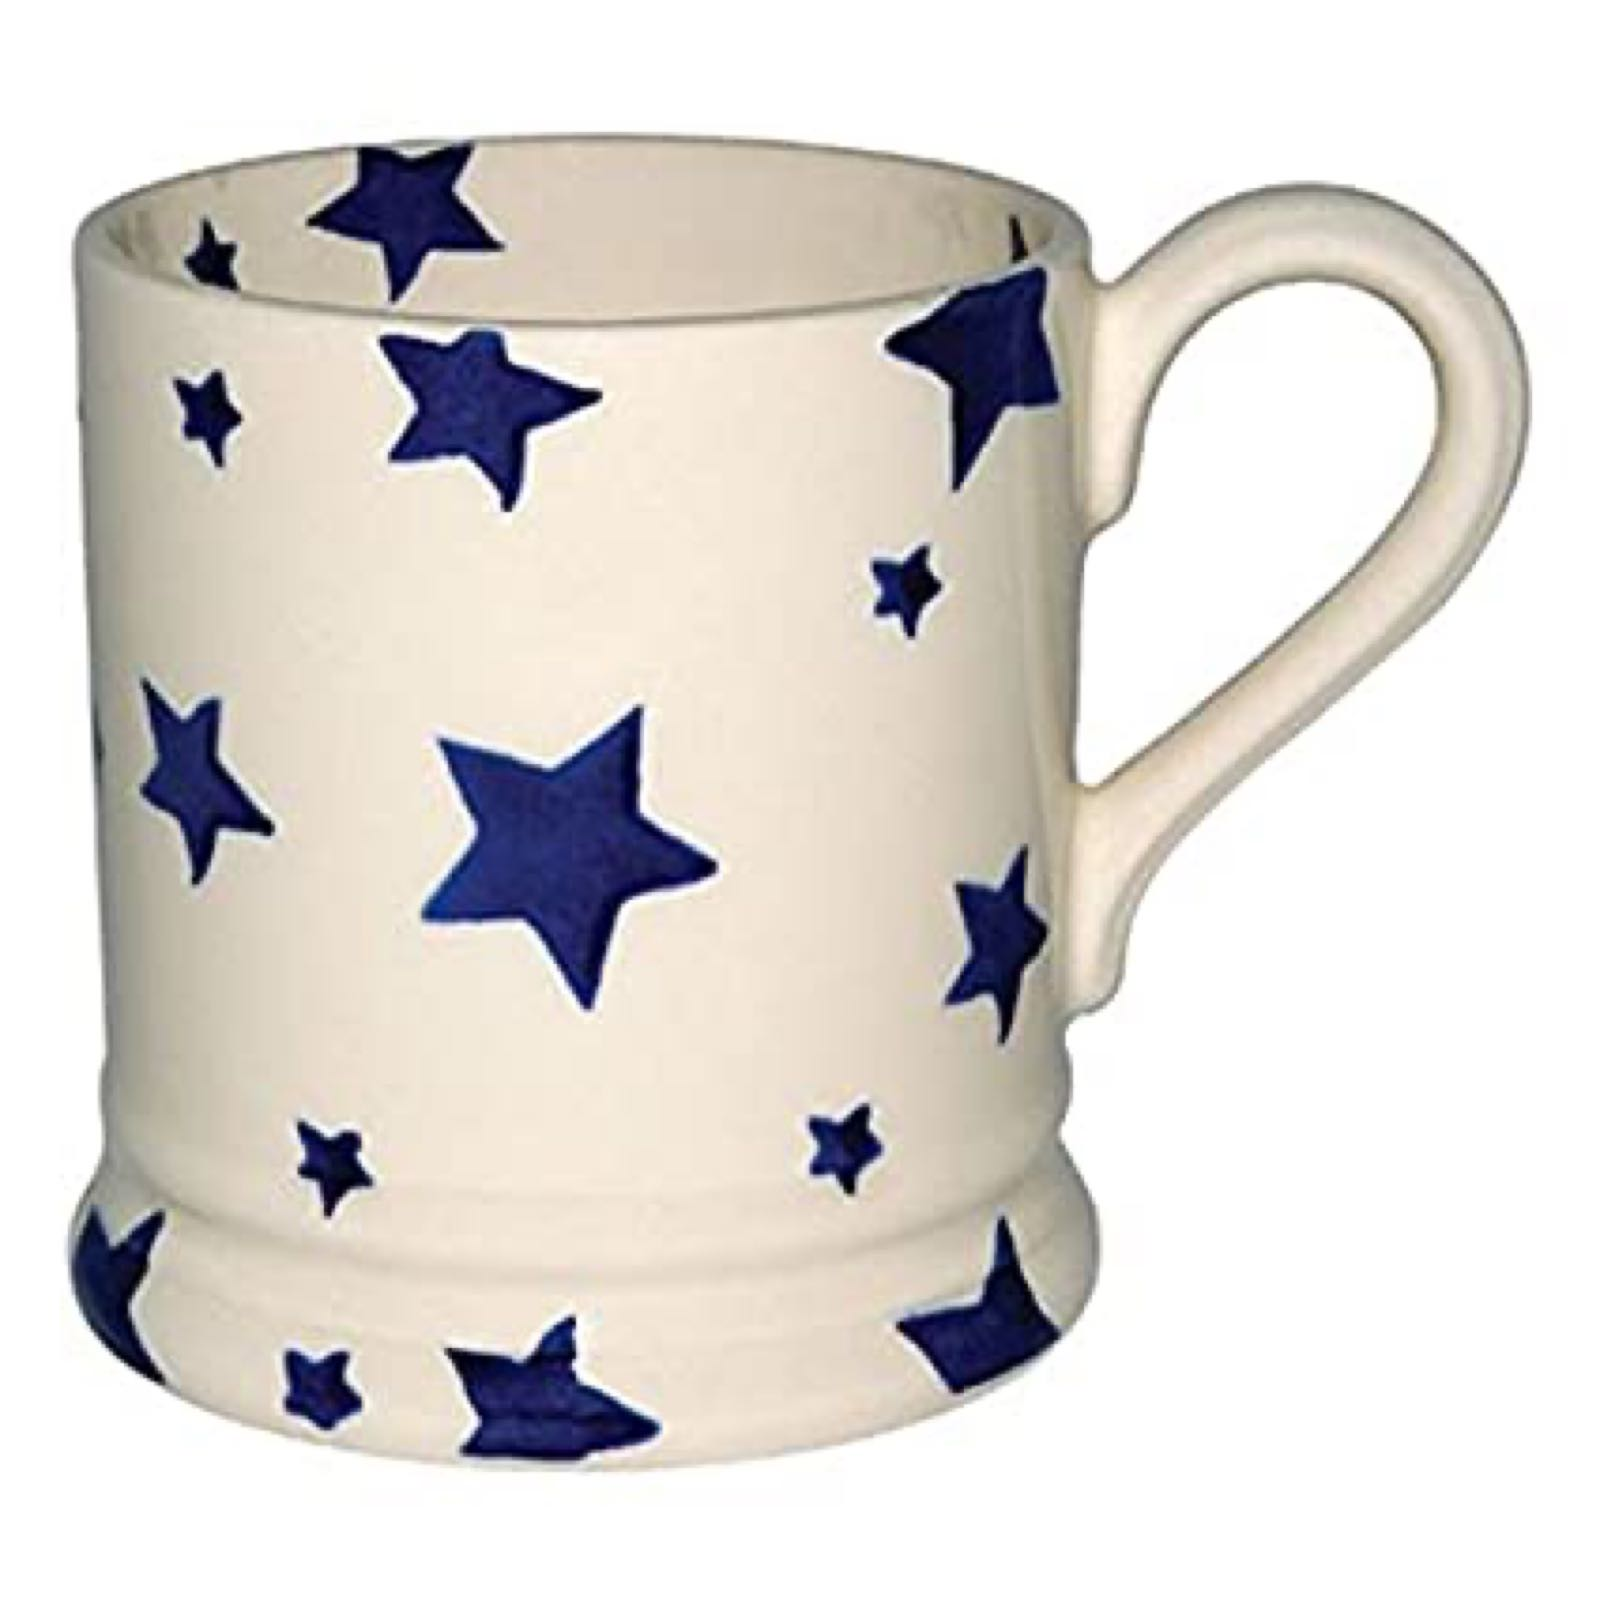 Emma Bridgewater Blue Star  1/2 Pint Boxed Mug